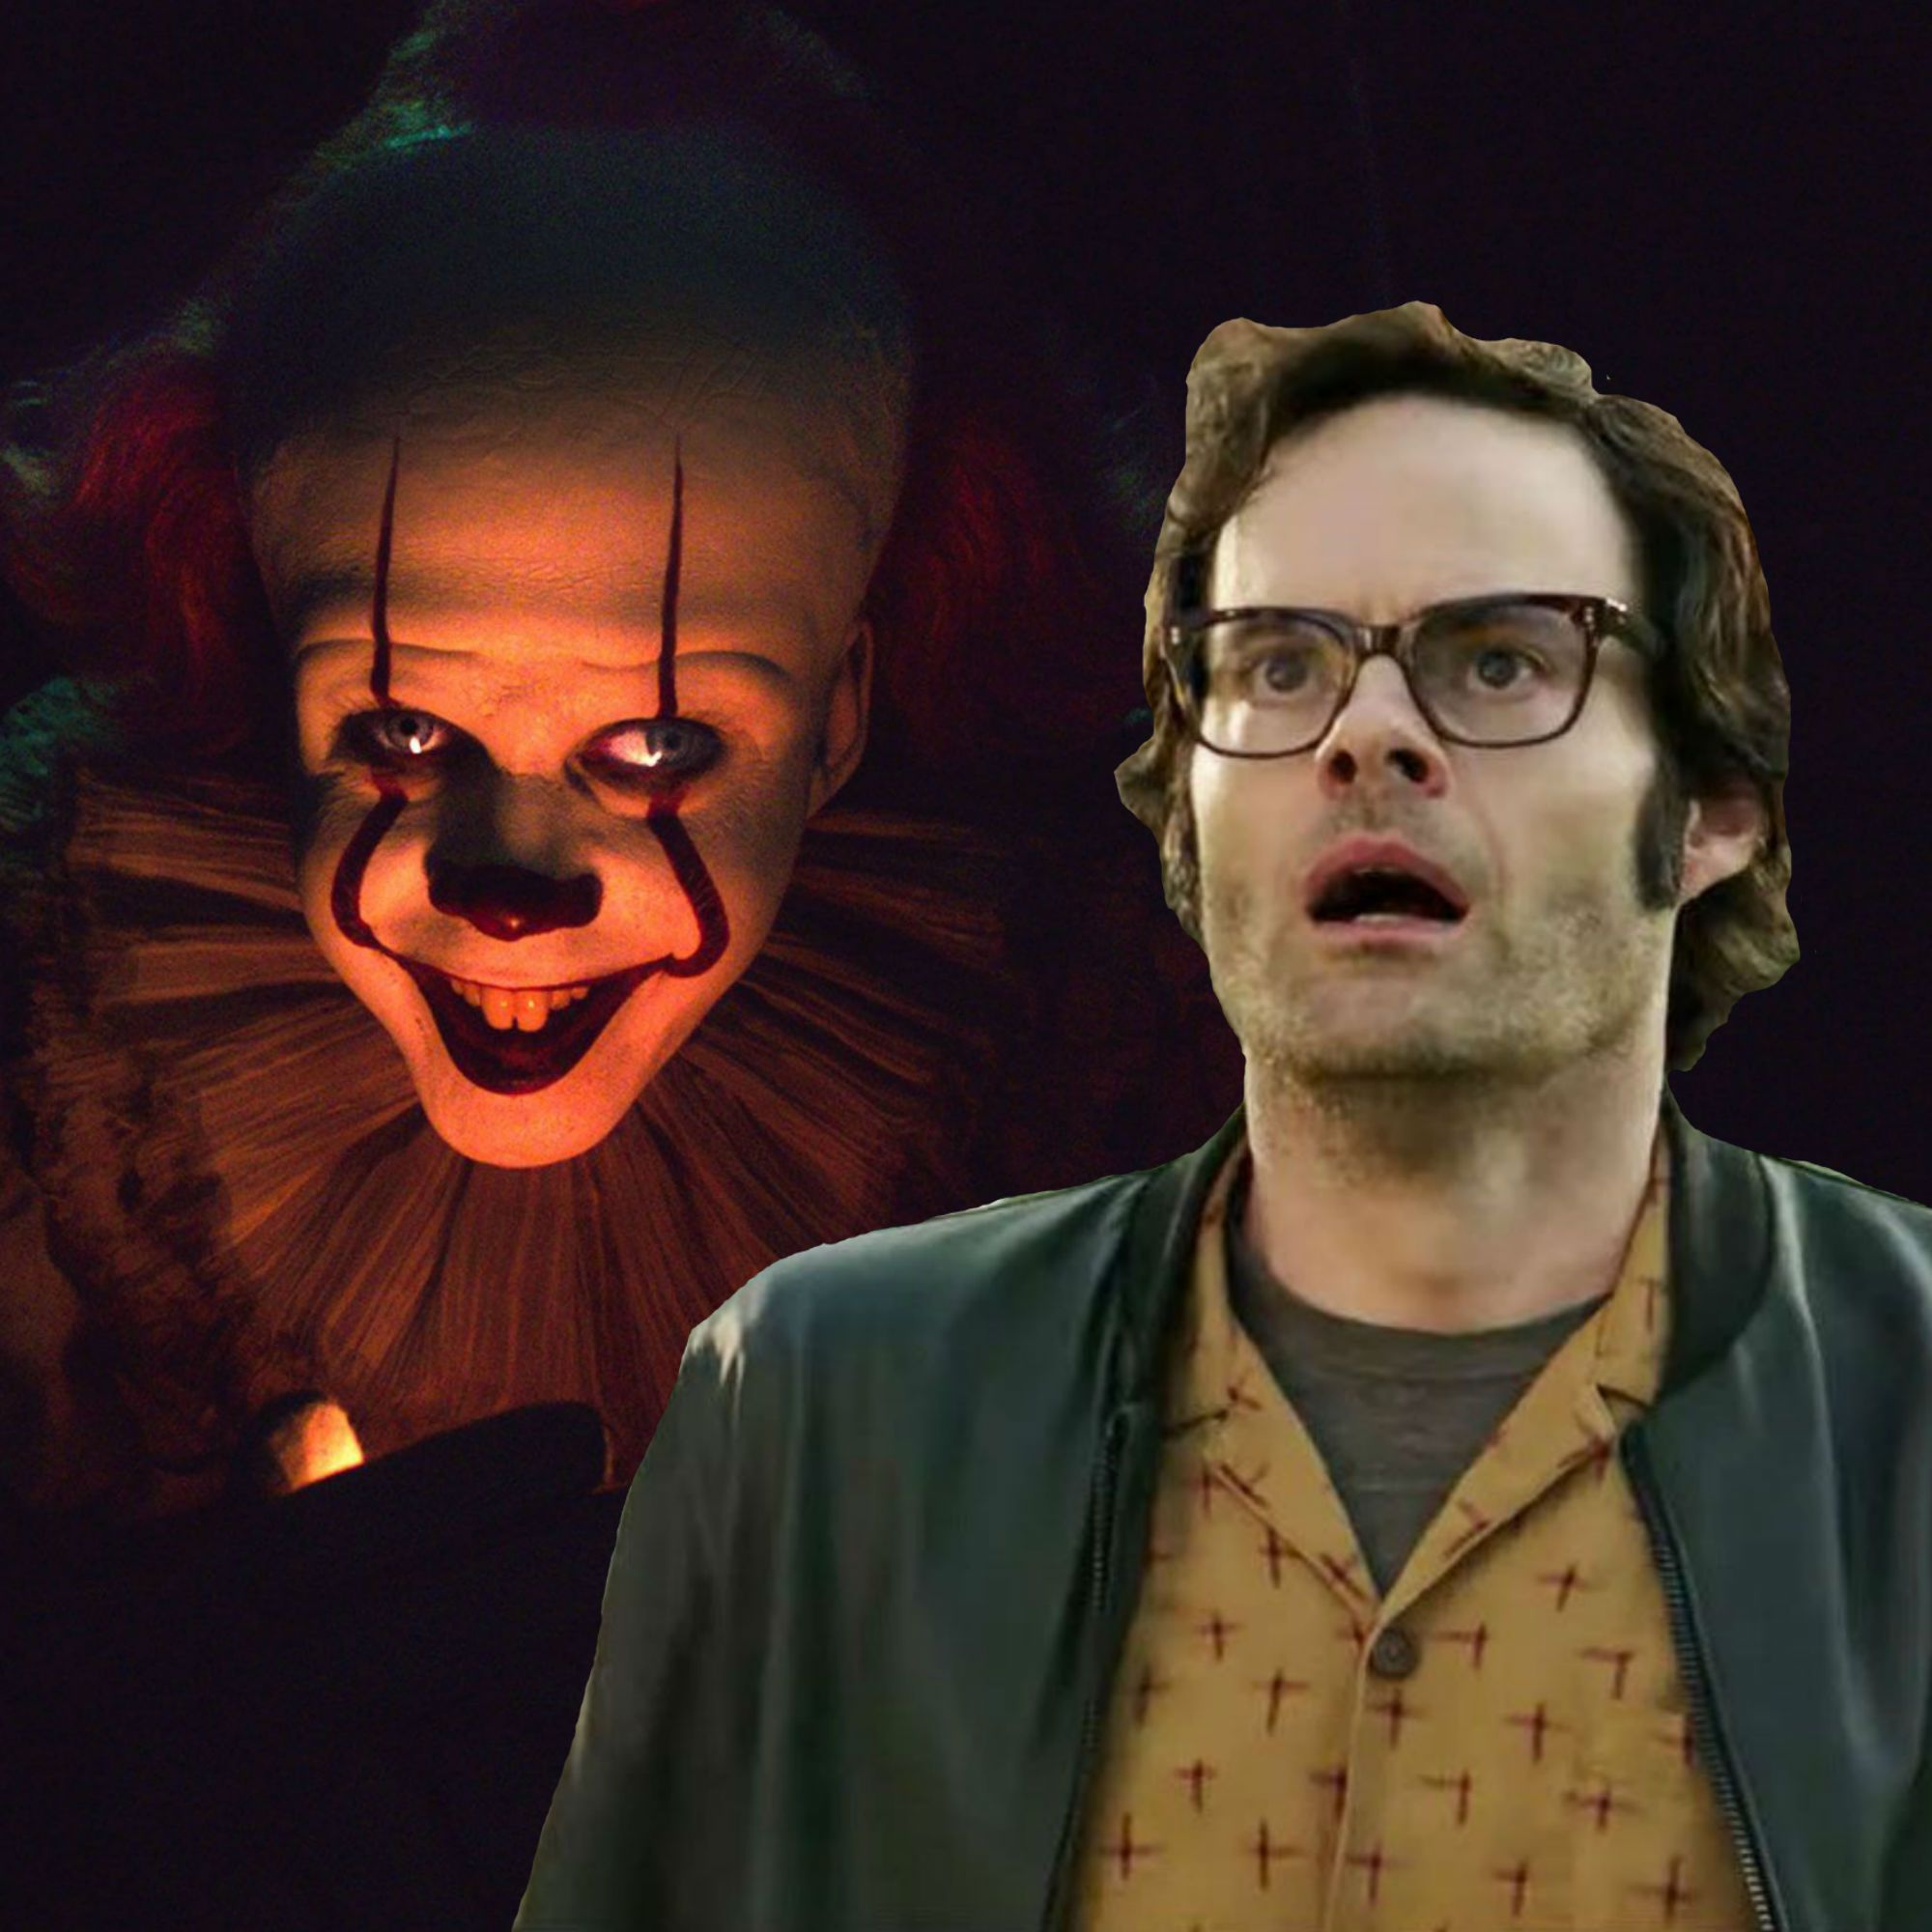 The scariest thing about It Chapter Two is the film's limited portrayal of queerness